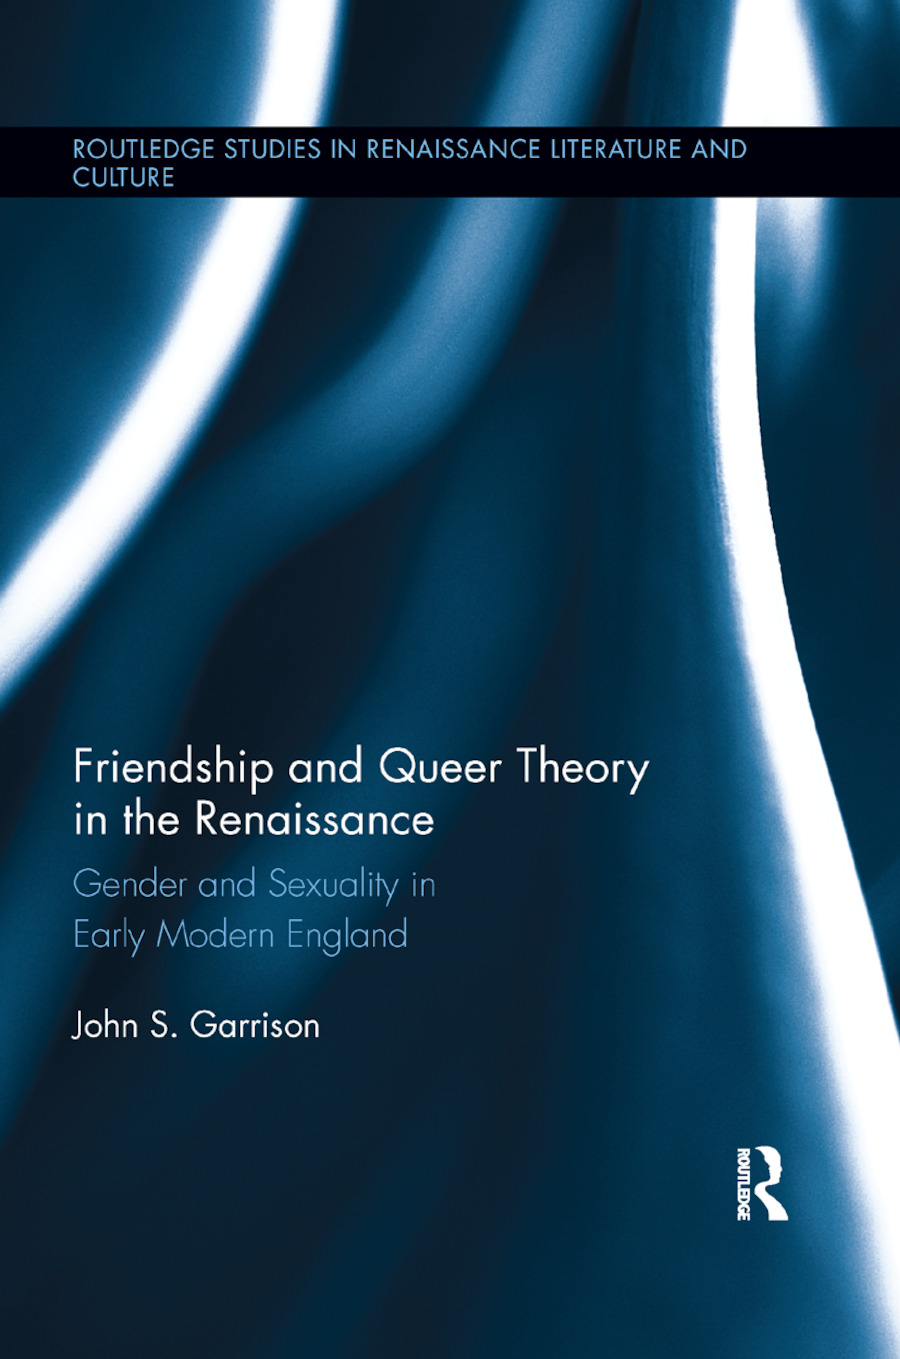 Friendship and Queer Theory in the Renaissance: Gender and Sexuality in Early Modern England book cover